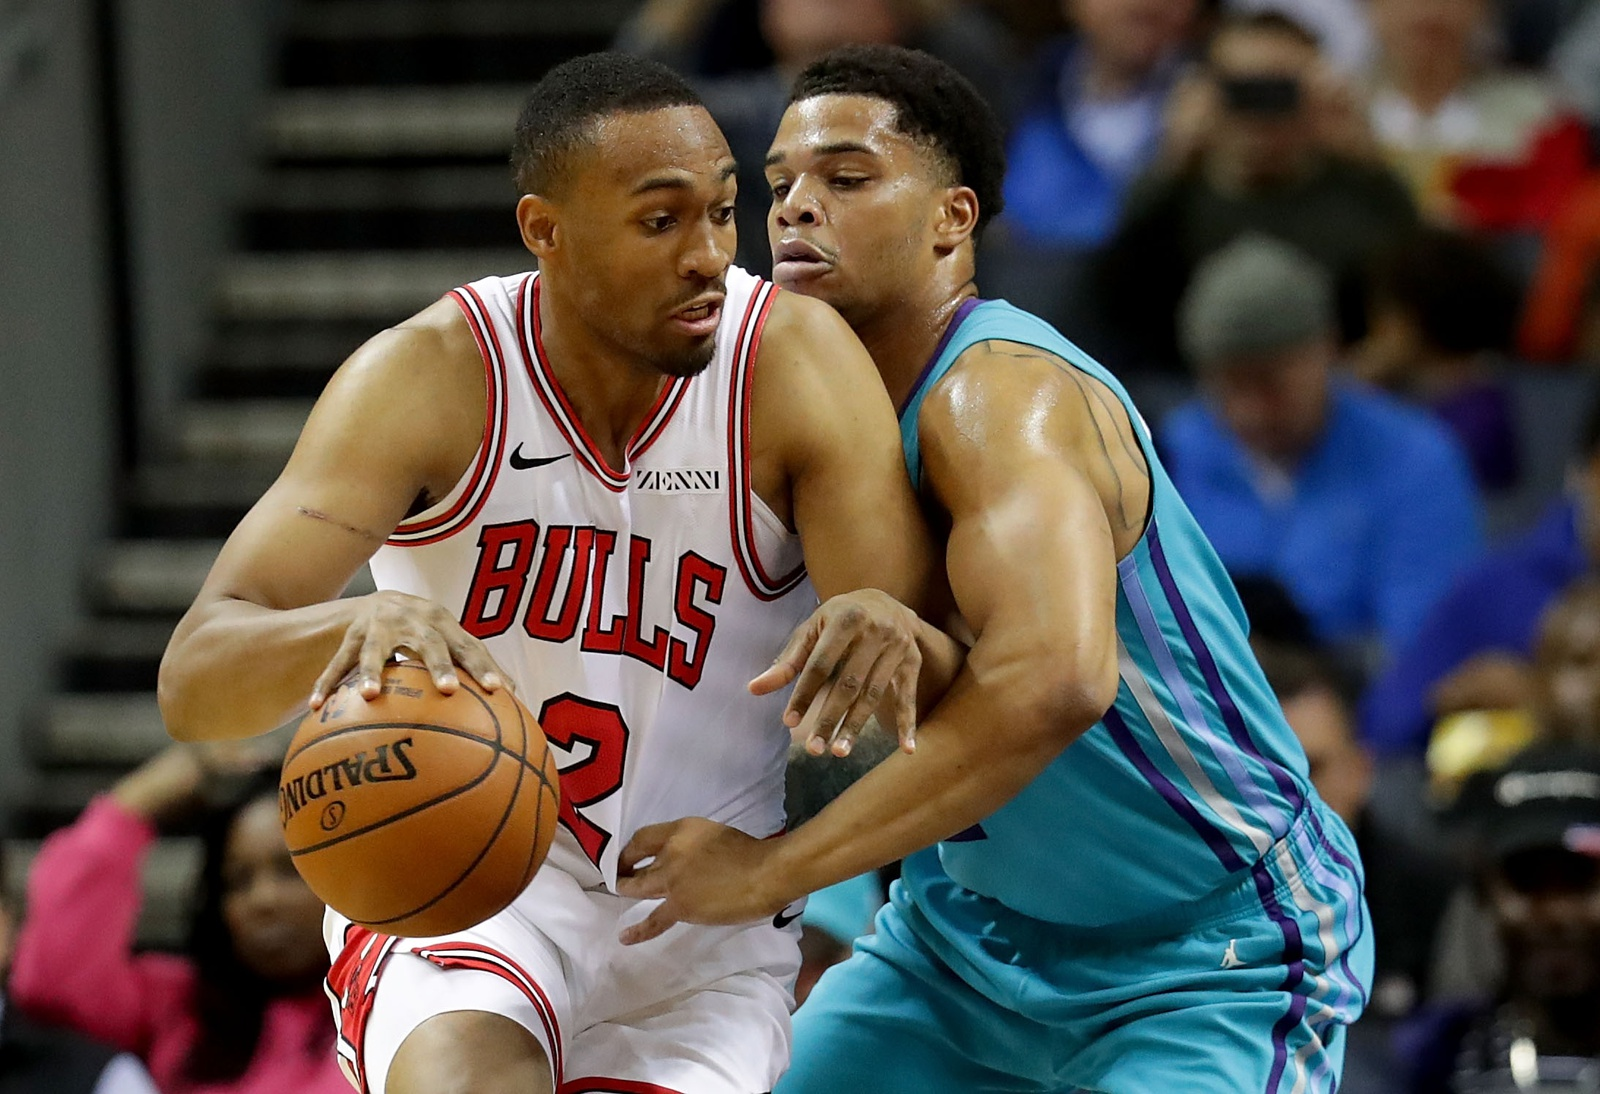 Miles Bridges #0 of the Charlotte Hornets tries to stop Jabari Parker #2 of the Chicago Bulls during their game at Spectrum Center on October 26, 2018 in Charlotte, North Carolina.